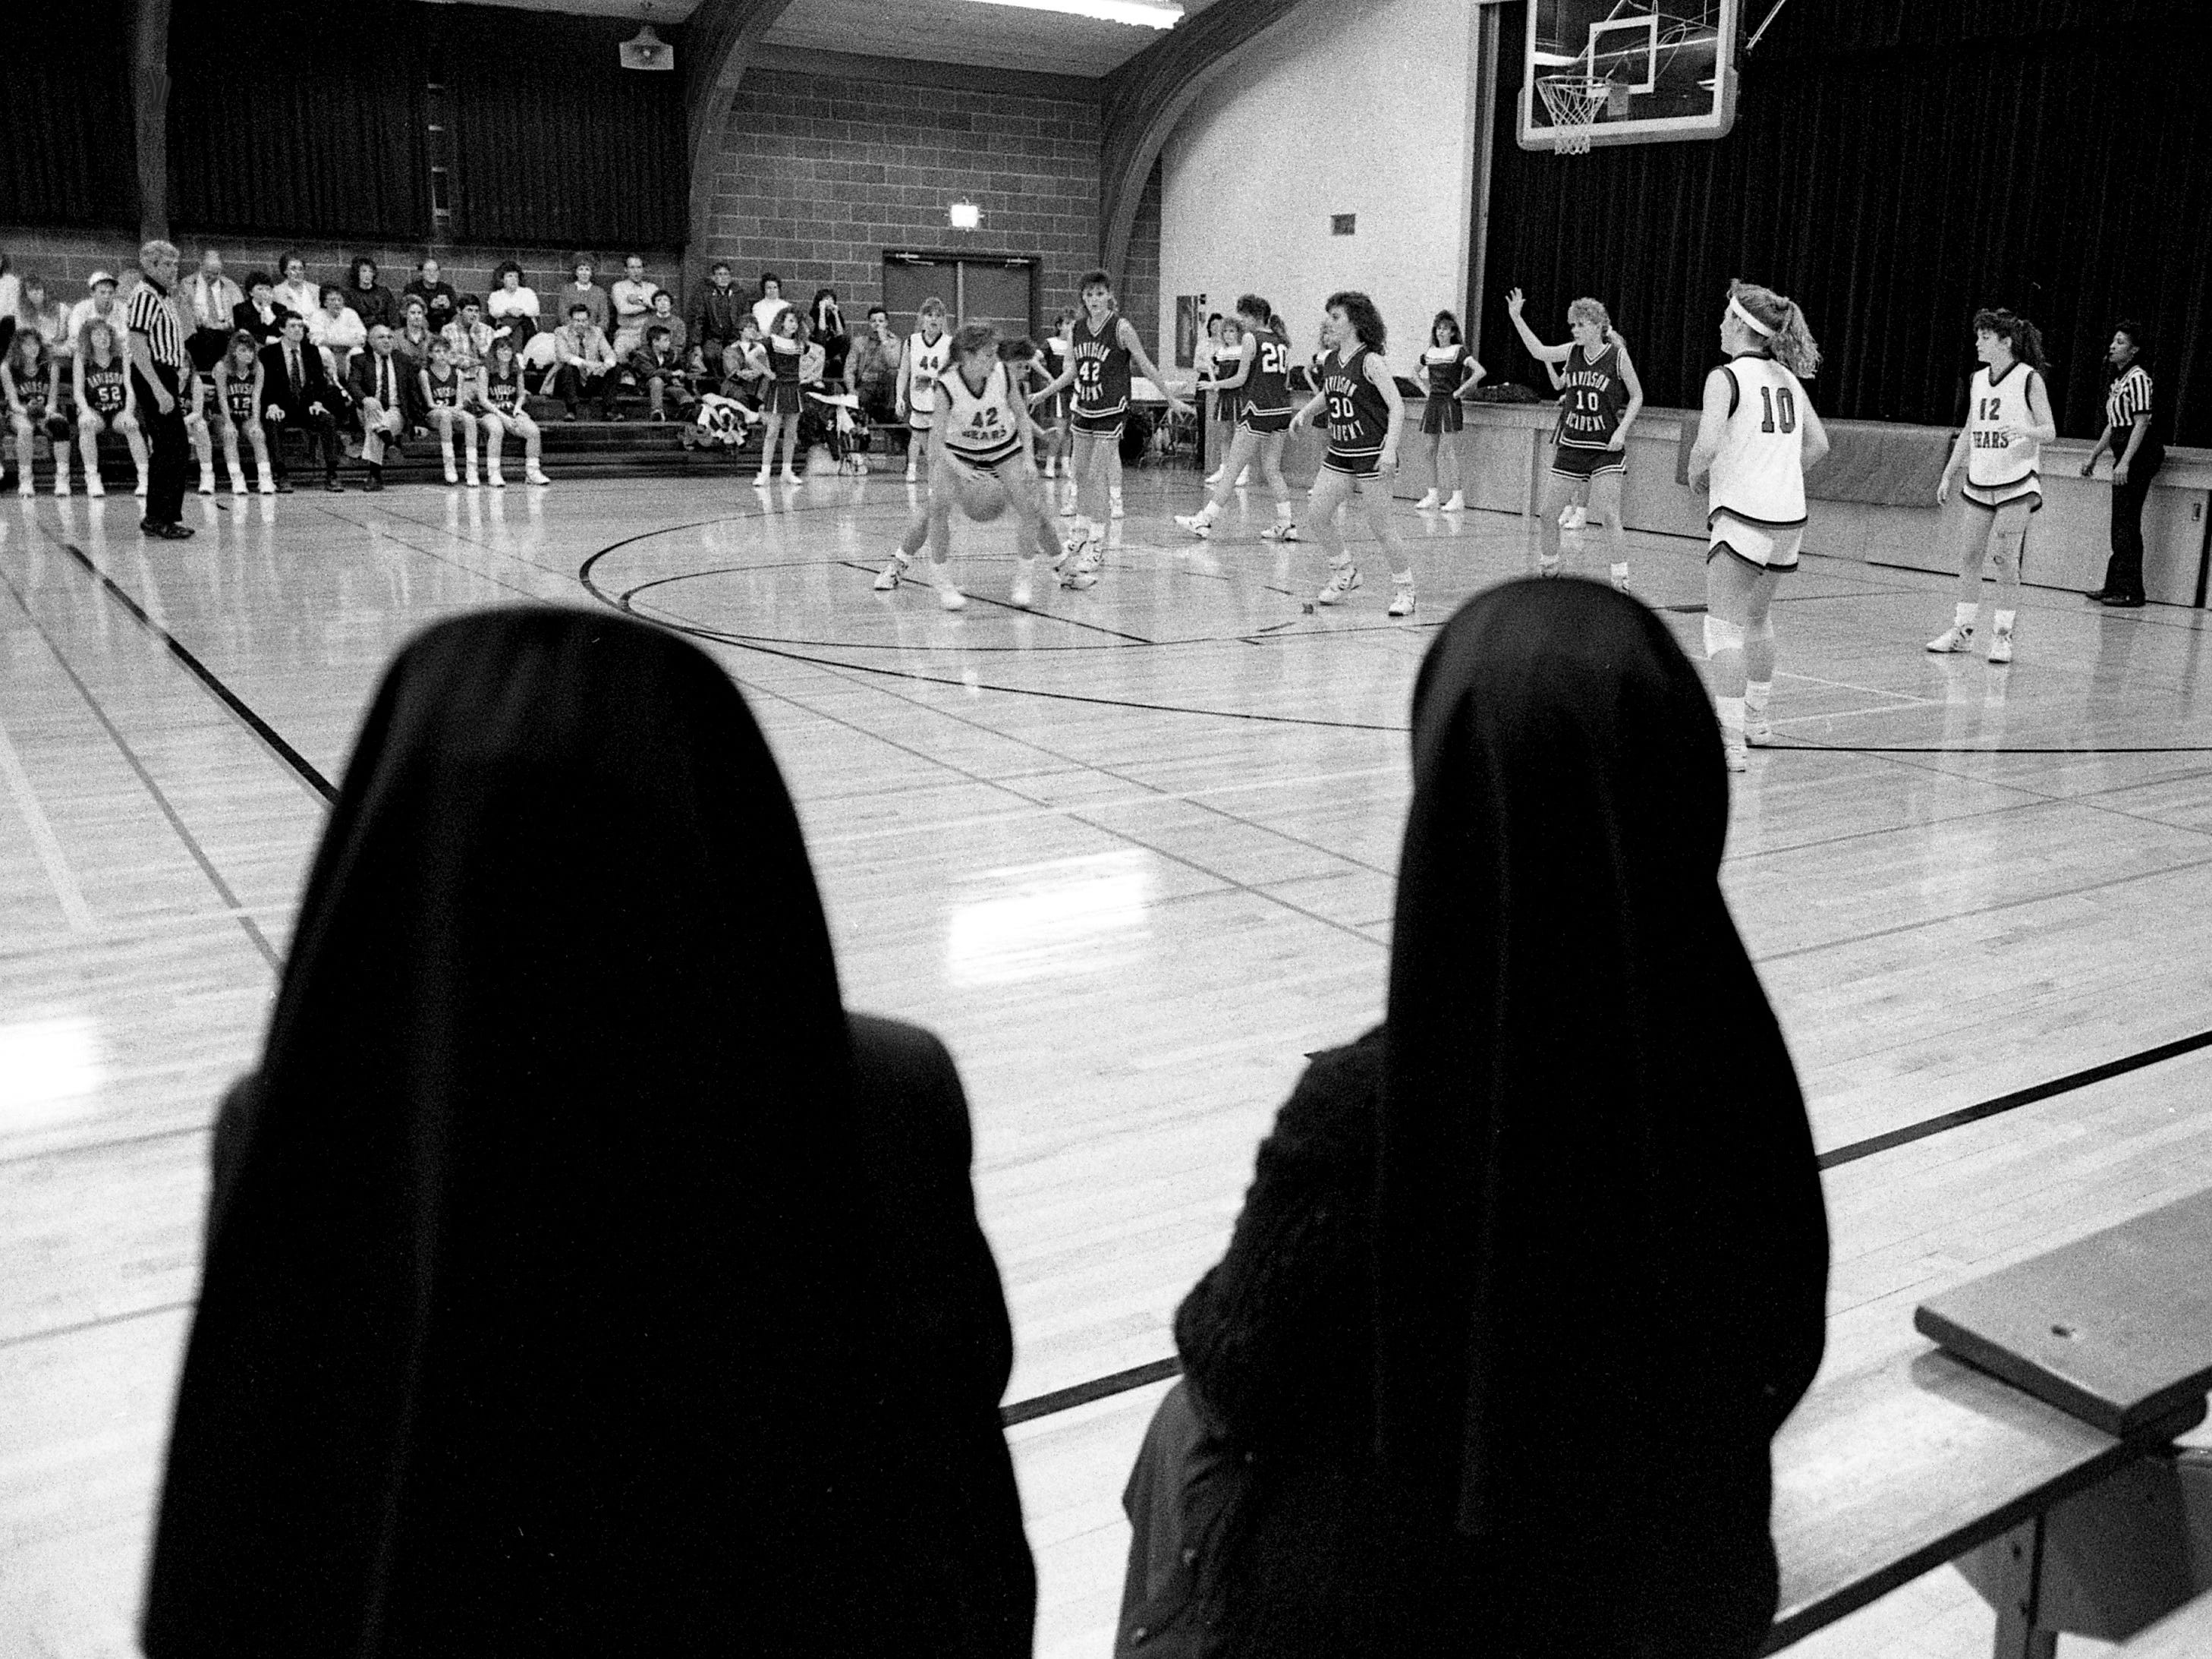 A couple of nuns who teach at St. Bernard Academy were part of a crowd of 75 fans who watched the action against Davidson Academy on Feb. 14, 1989, in the final game ever for St. Bernard, which will close its doors this spring.